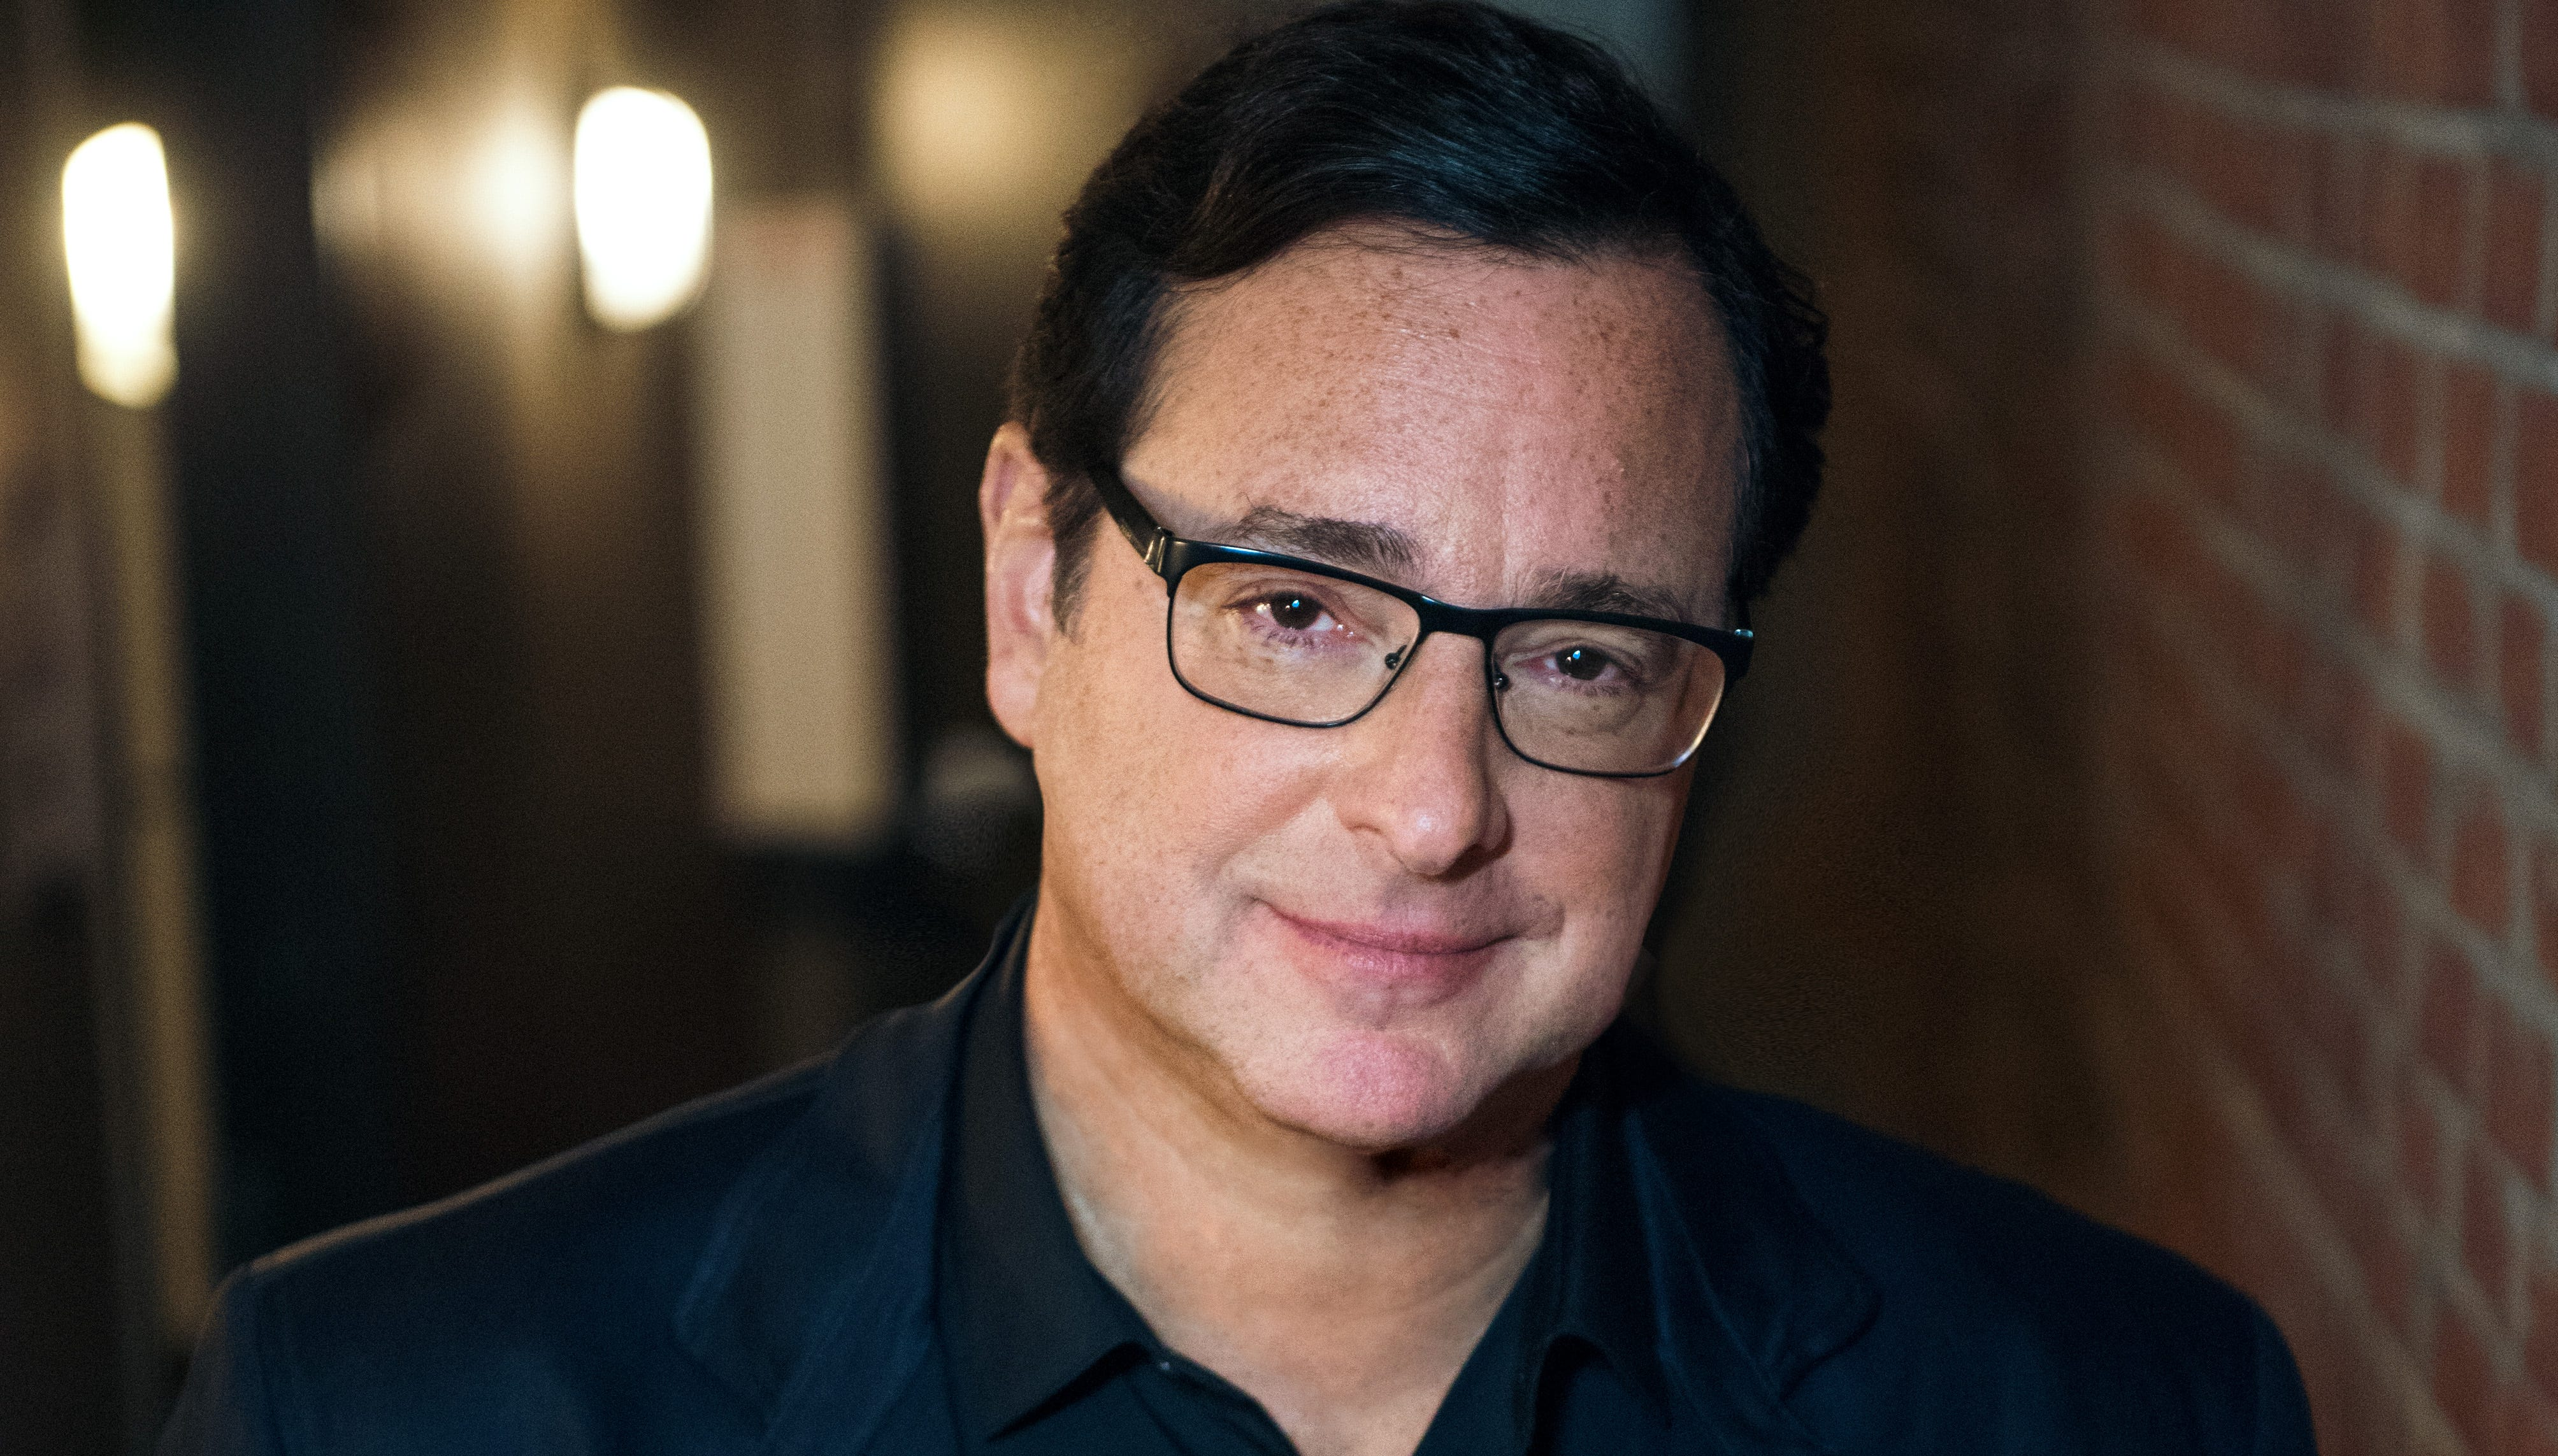 Bob Saget will entertain the audience Saturday night at Grand Falls.